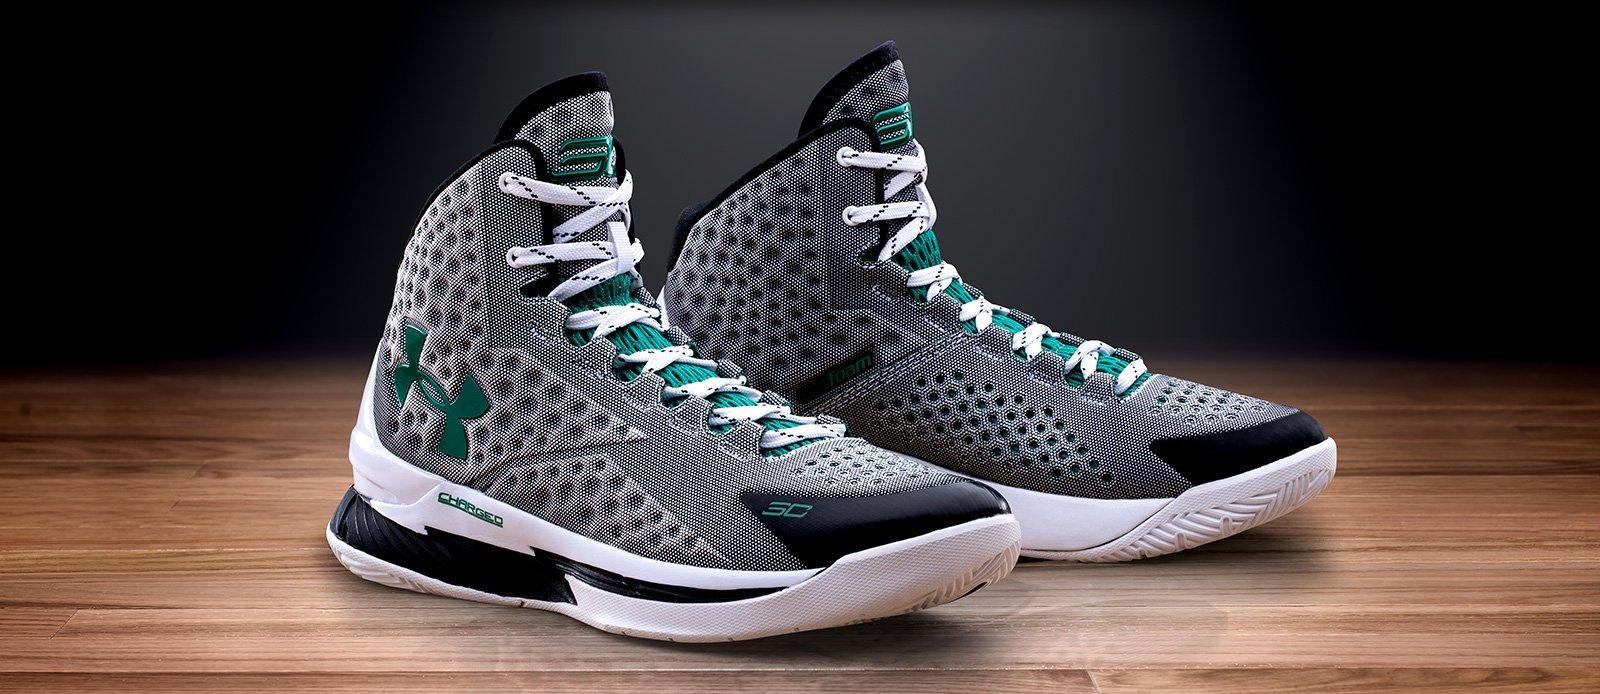 under armour curry 1 low green white